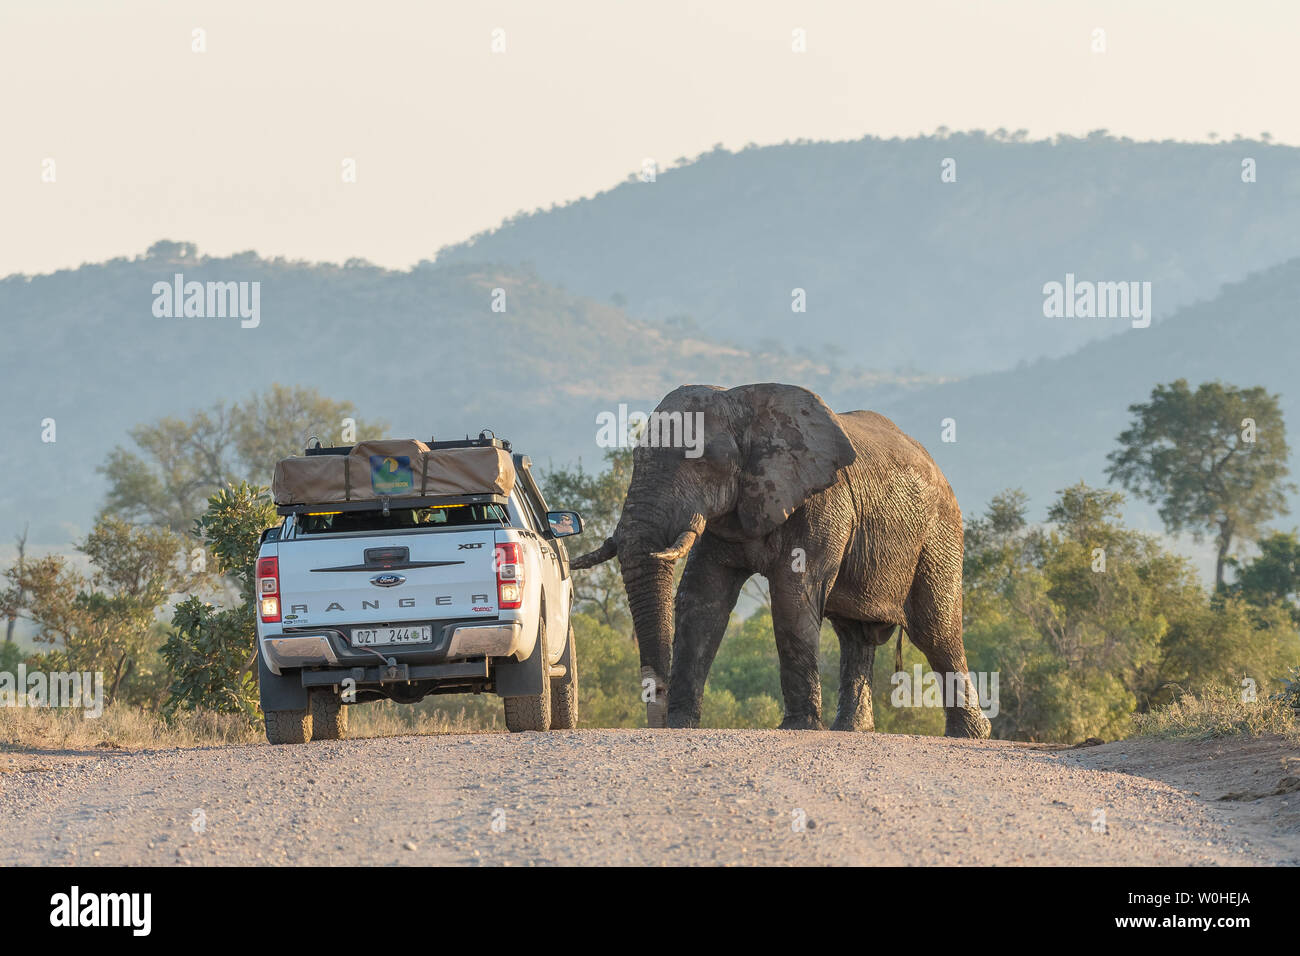 KRUGER NATIONAL PARK, SOUTH AFRICA - MAY 3, 2019: A vehicle